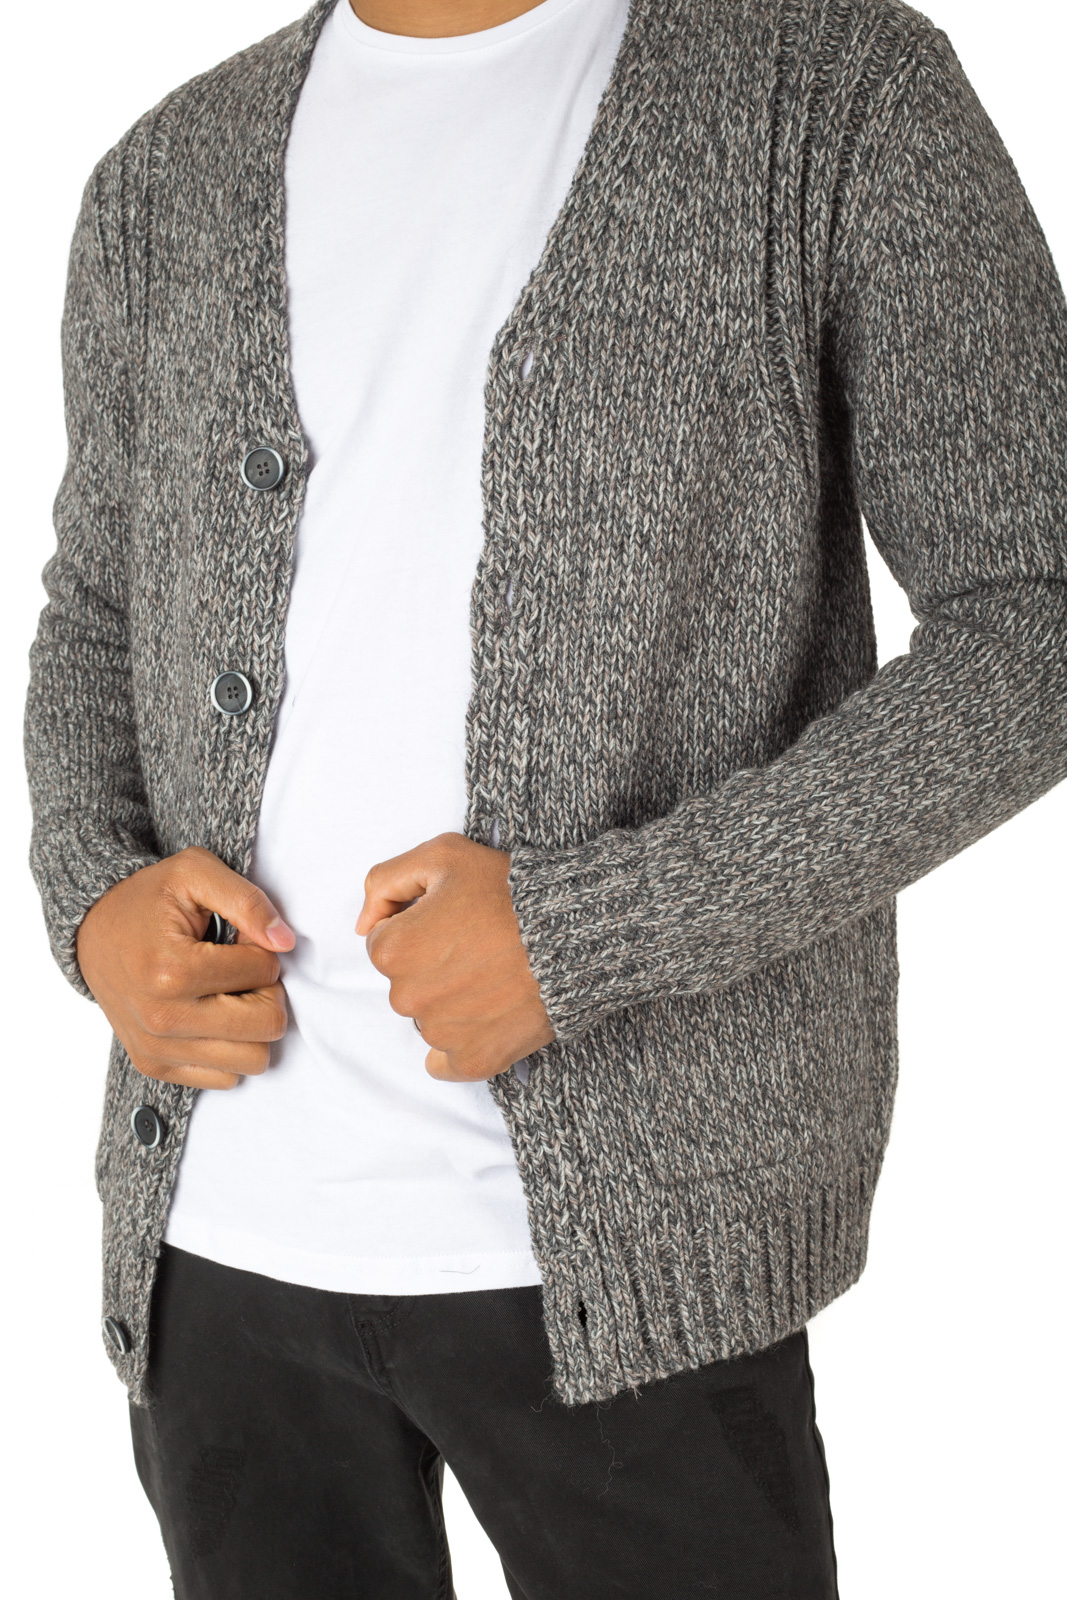 Minimum - Cardigan in gray Paicey jersey